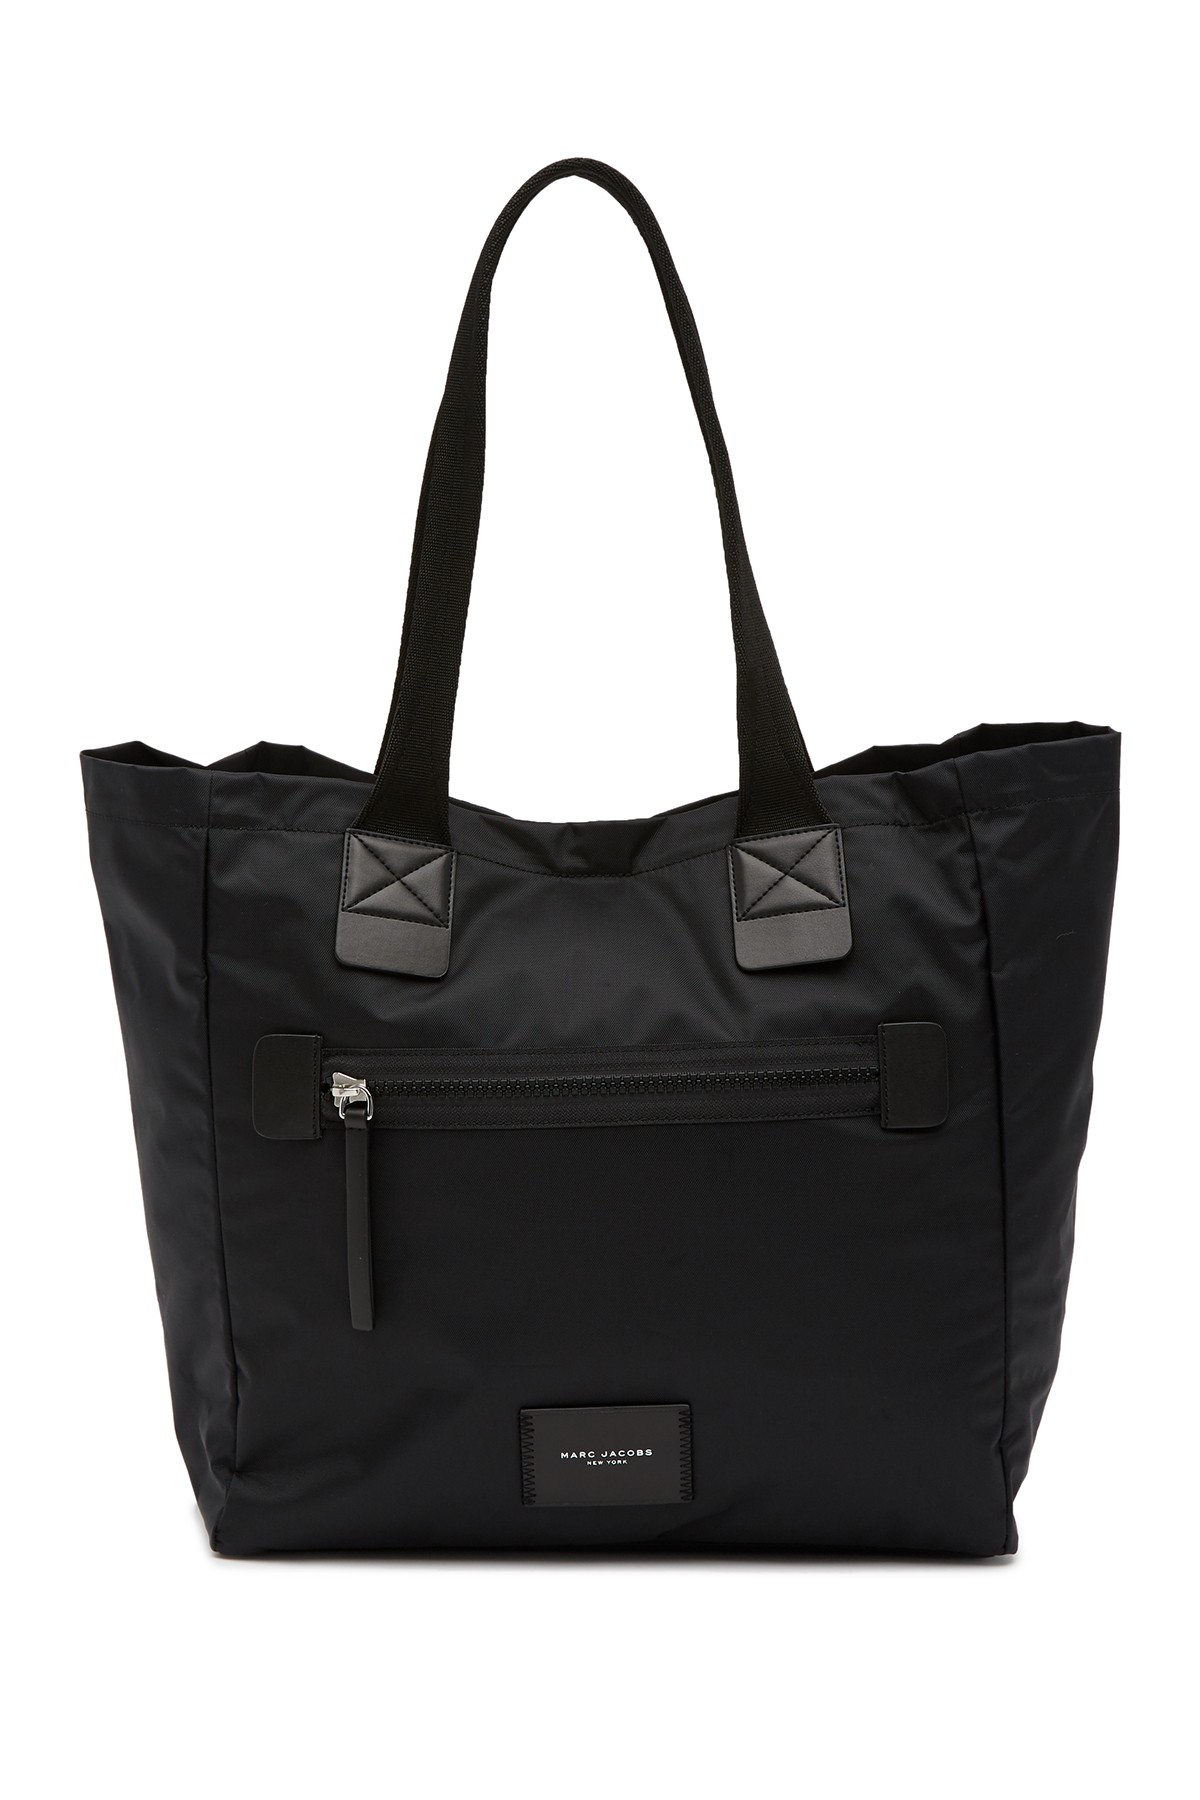 Marc Jacobs - Nylon Biker Tote is now 49% off. Free Shipping on orders over   100. 6a9fd36b08fd5